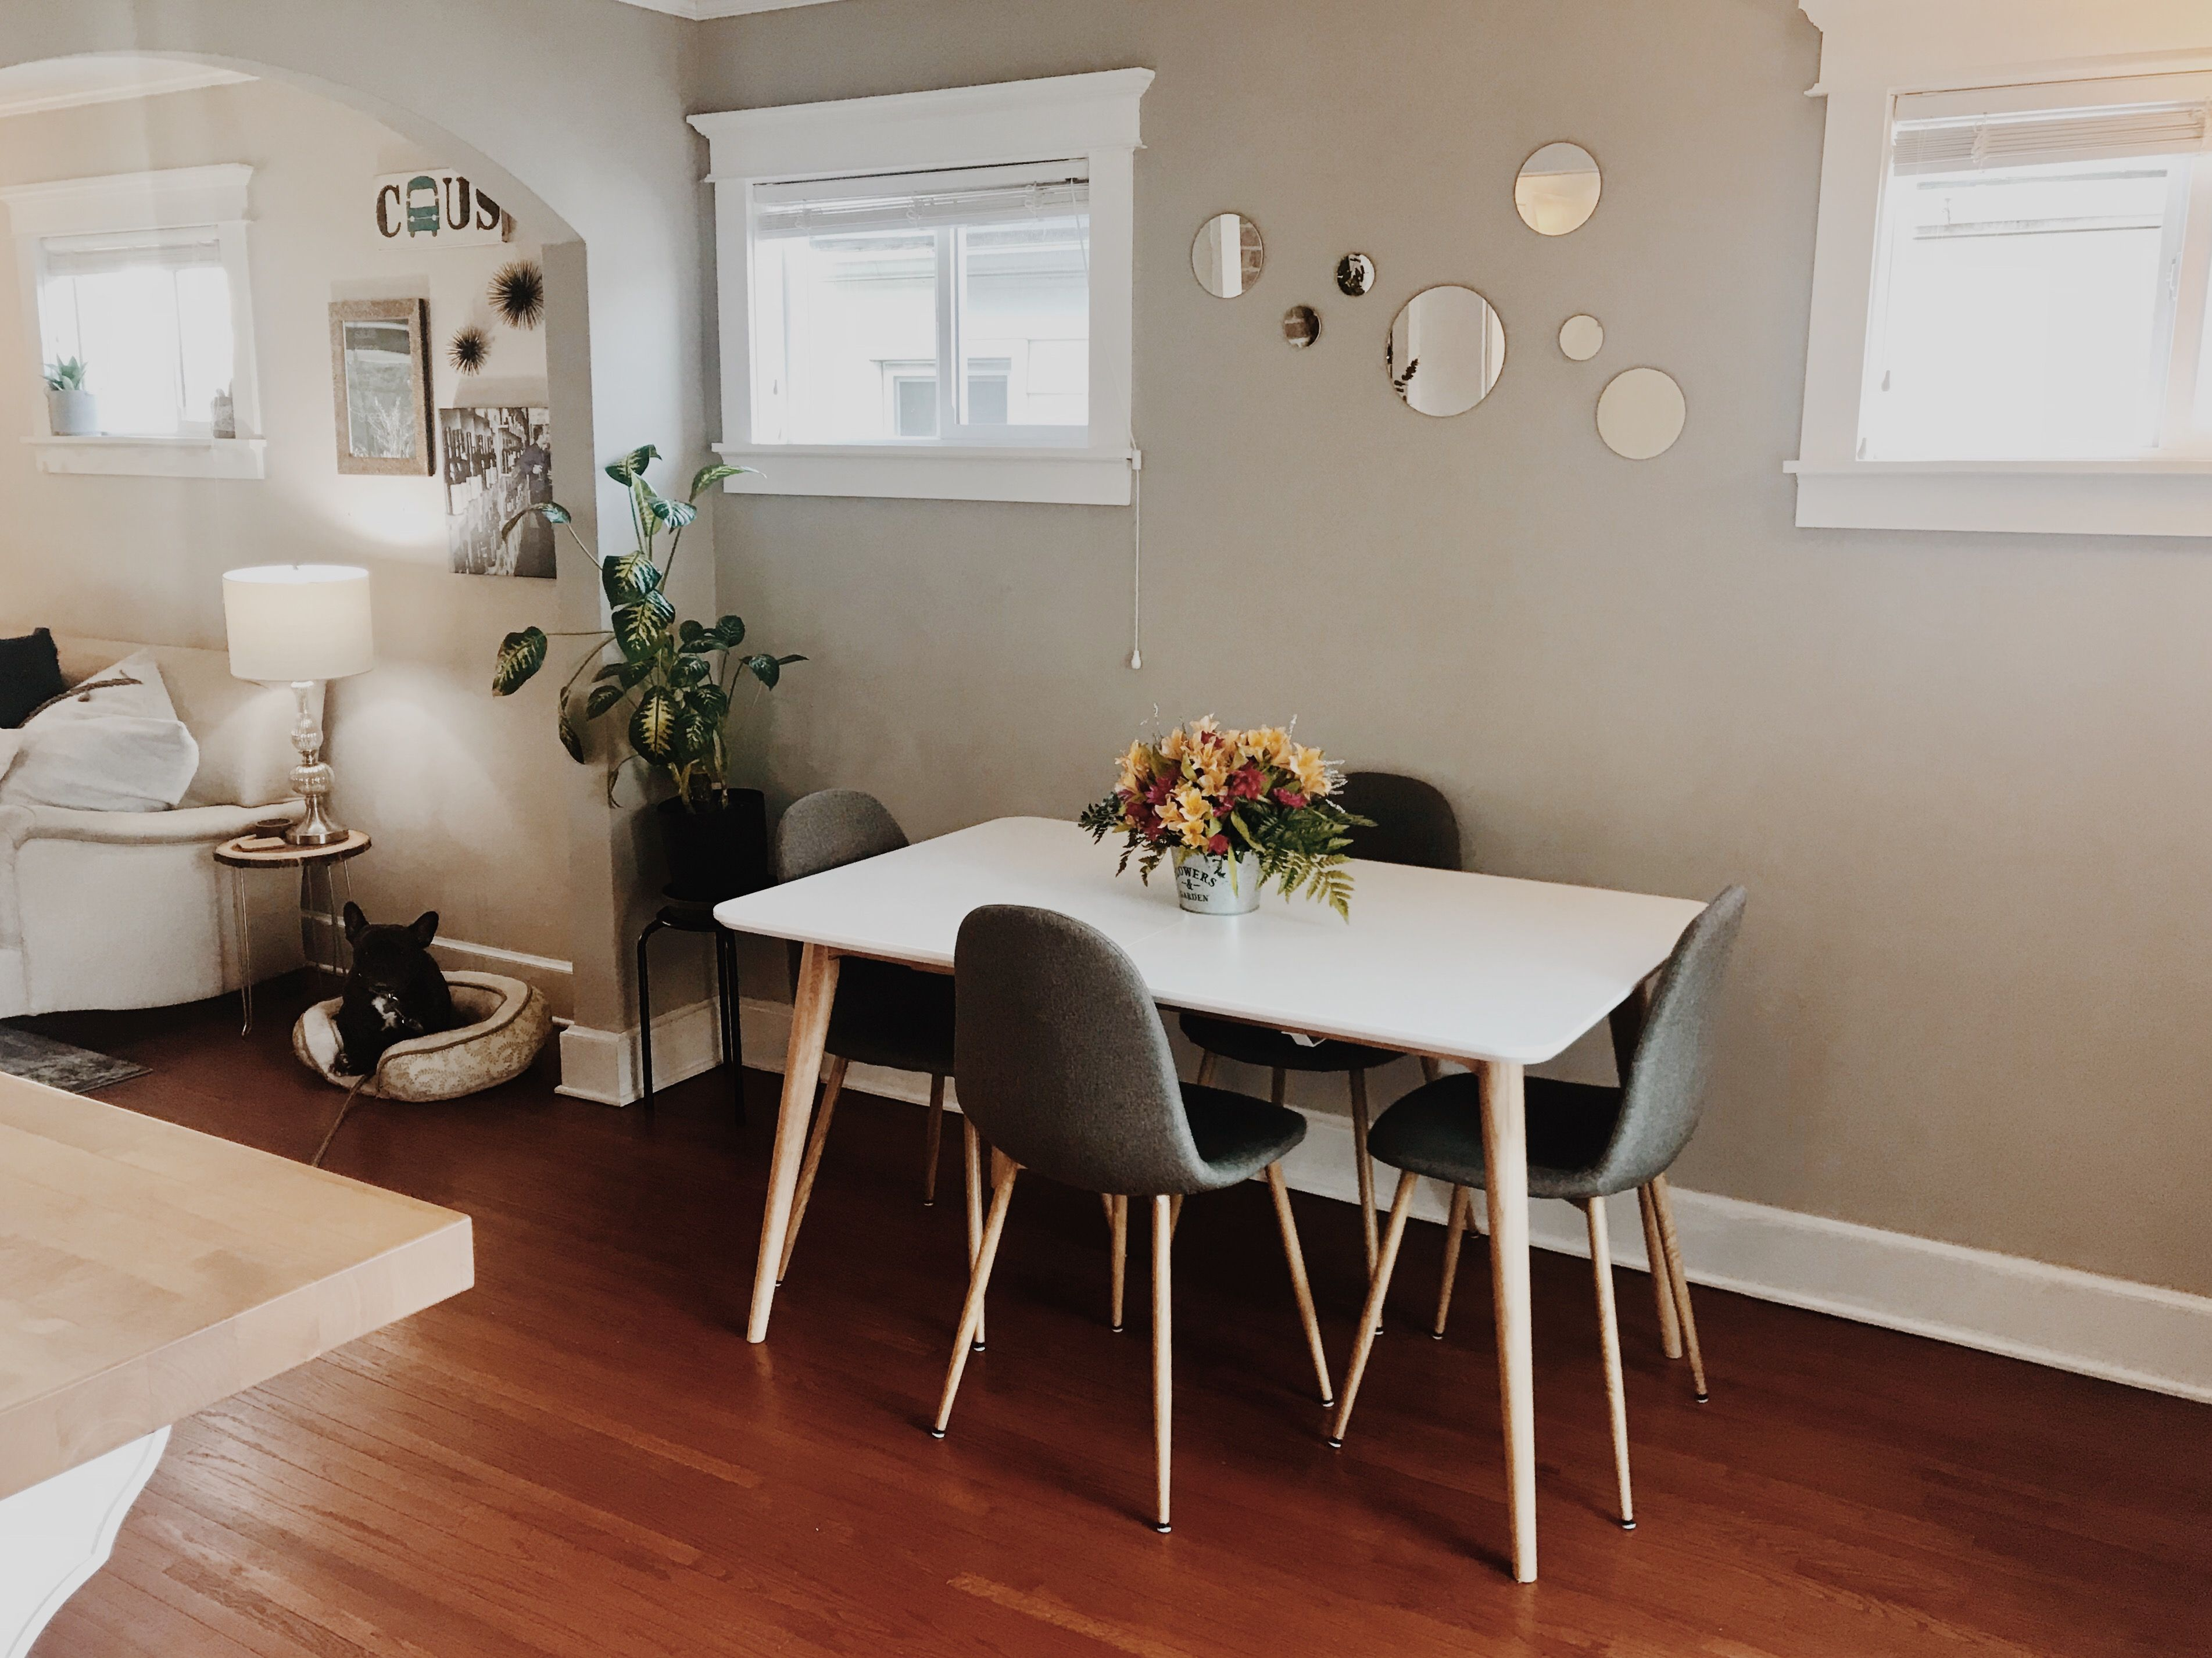 Small Dining Room Mid Century Modern Table And Chairs Design